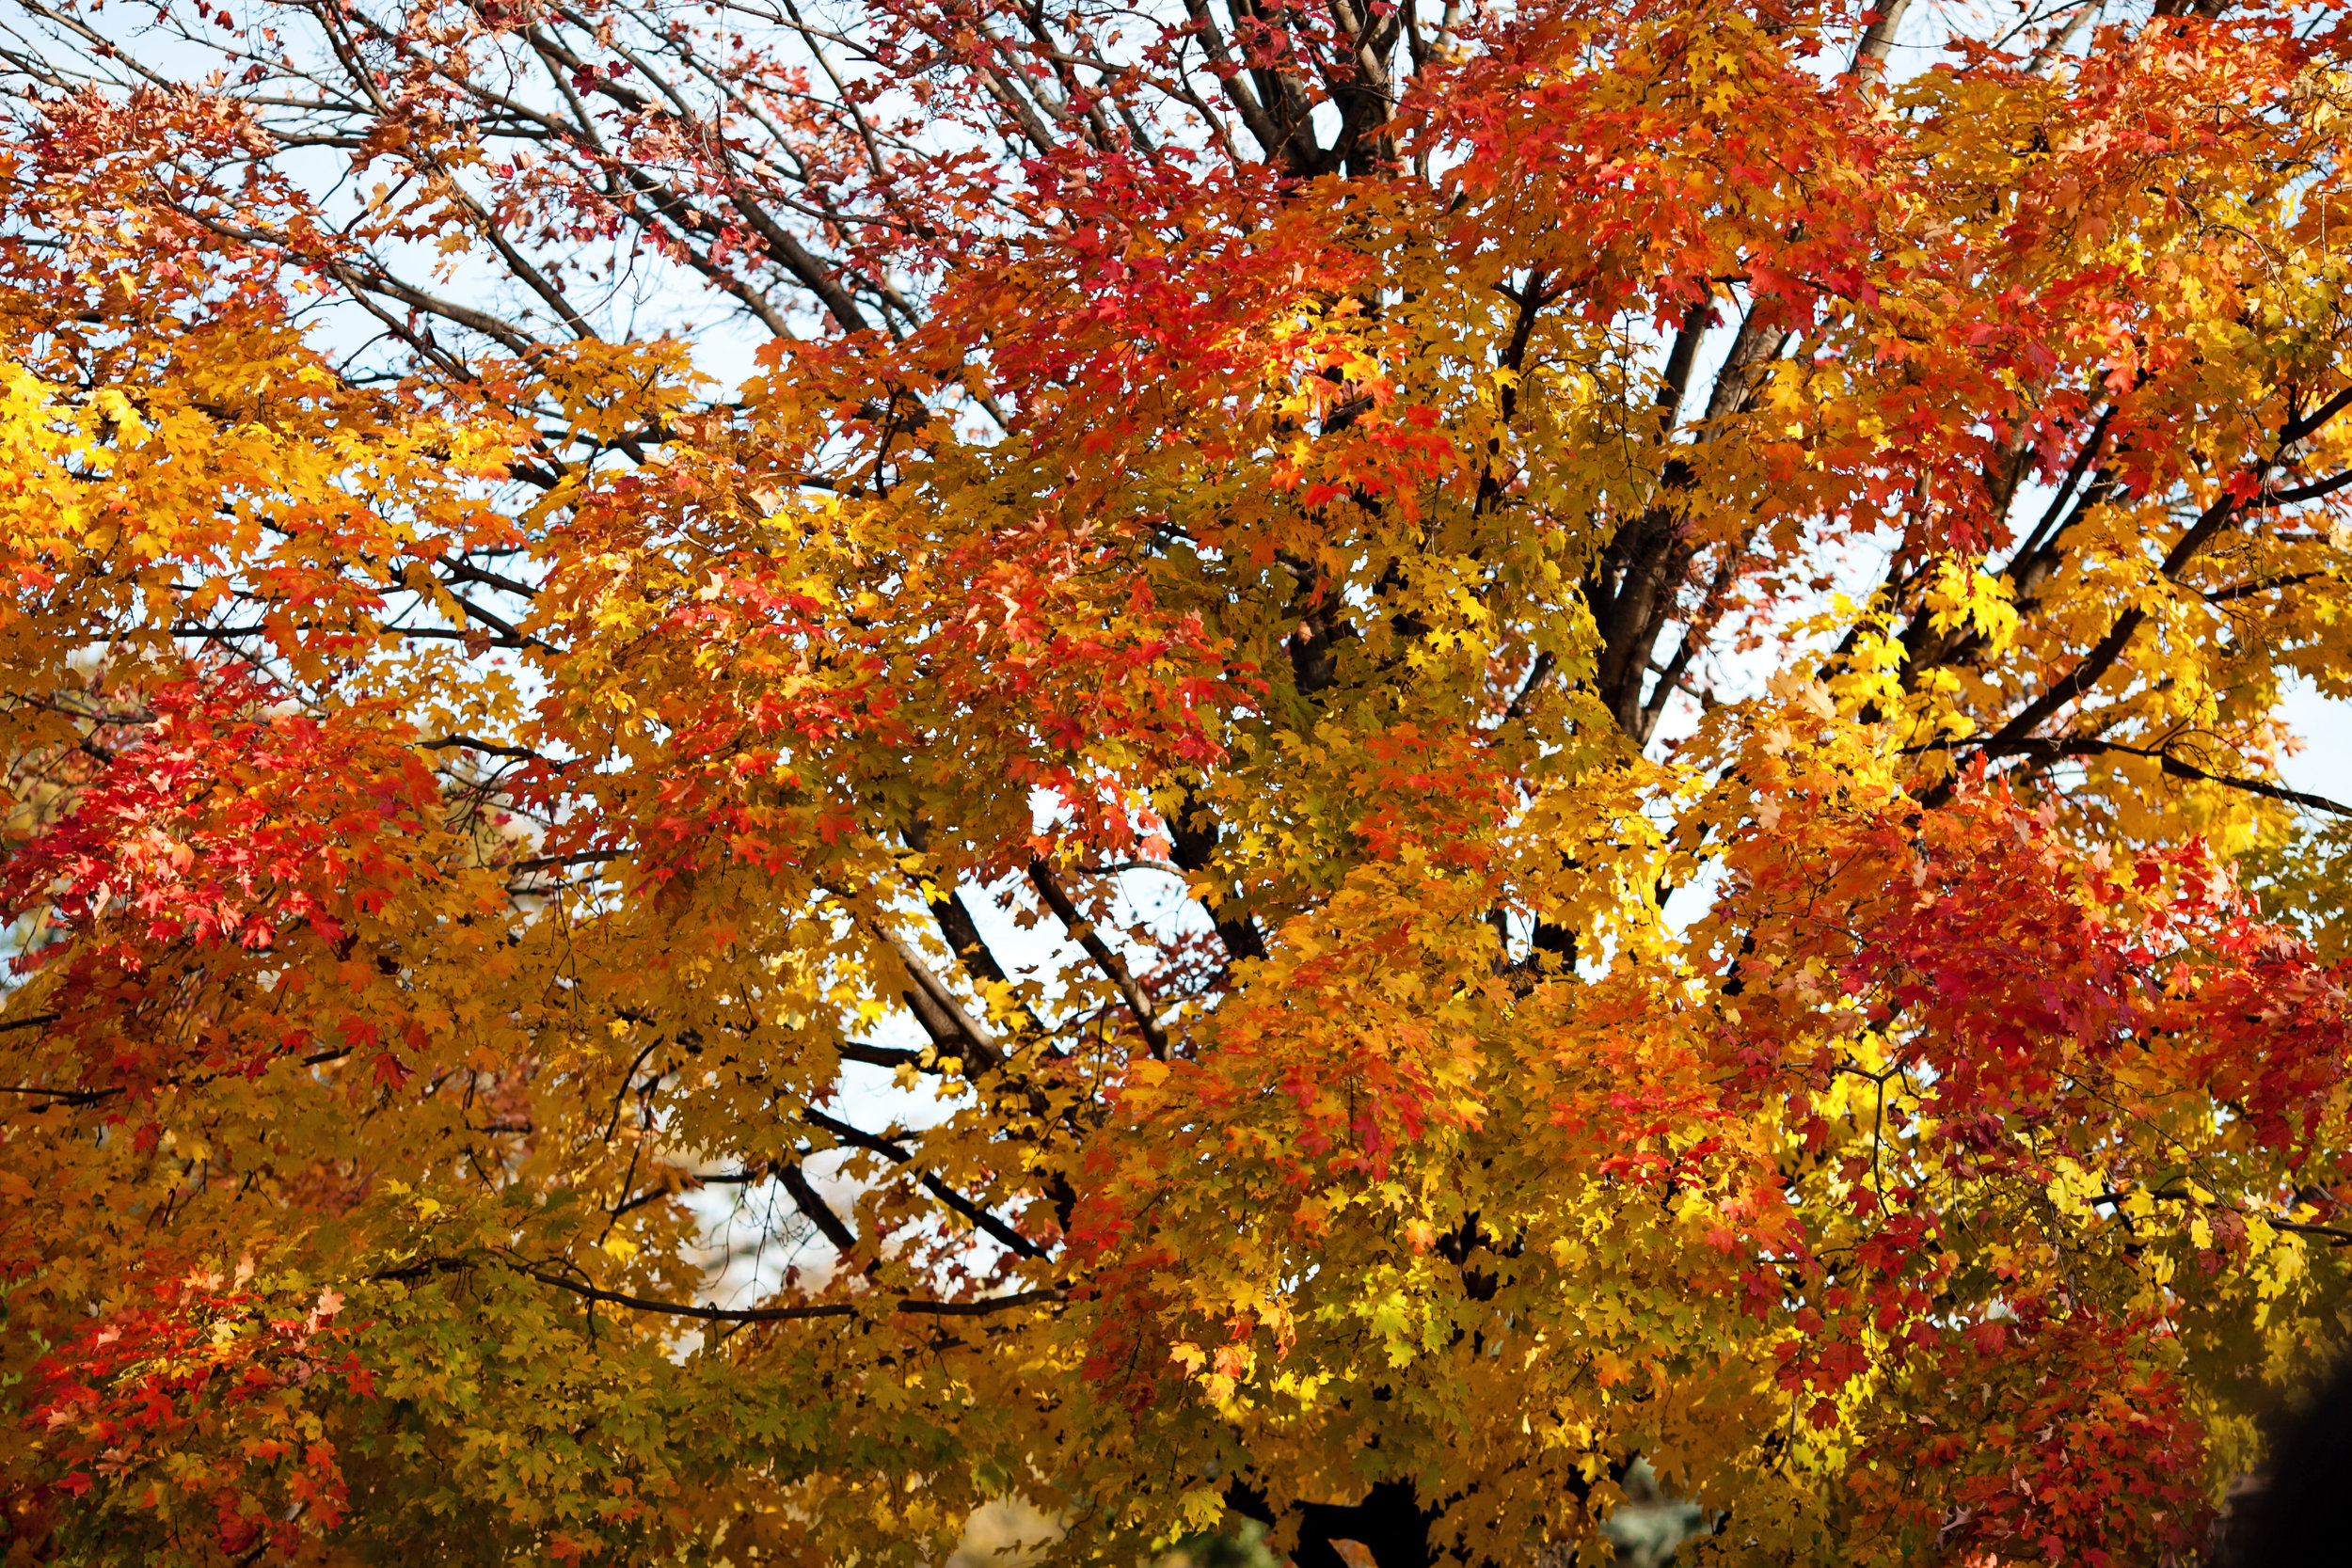 21 fall wedding fall wedding outdoors leaves changing colors orange and yellow tree leaves unique outdoor trees Life Design Events  .jpg